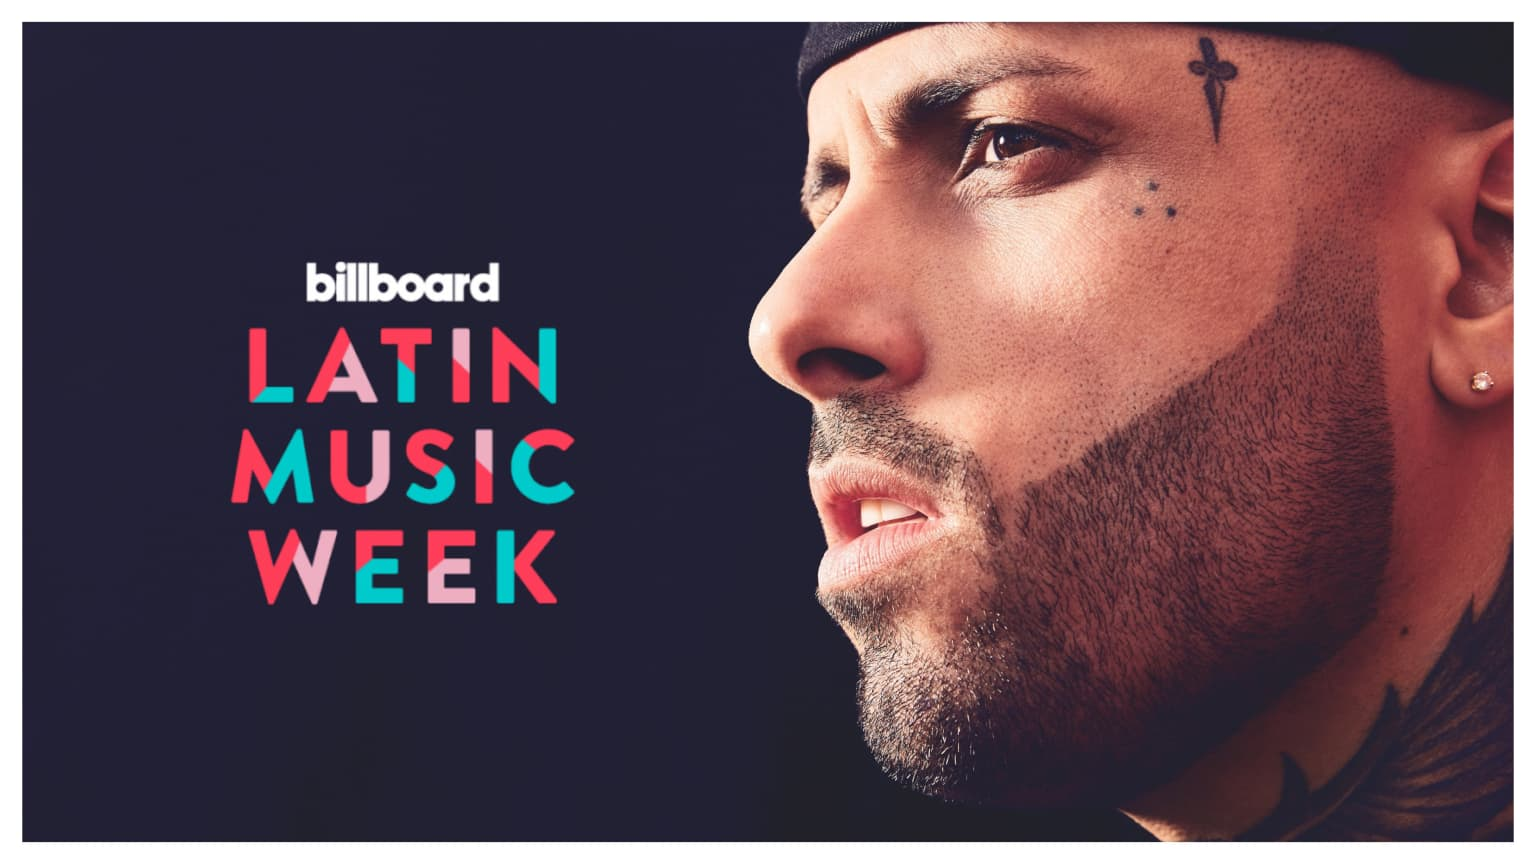 Billboard Latin Week Pitch Deck 2018